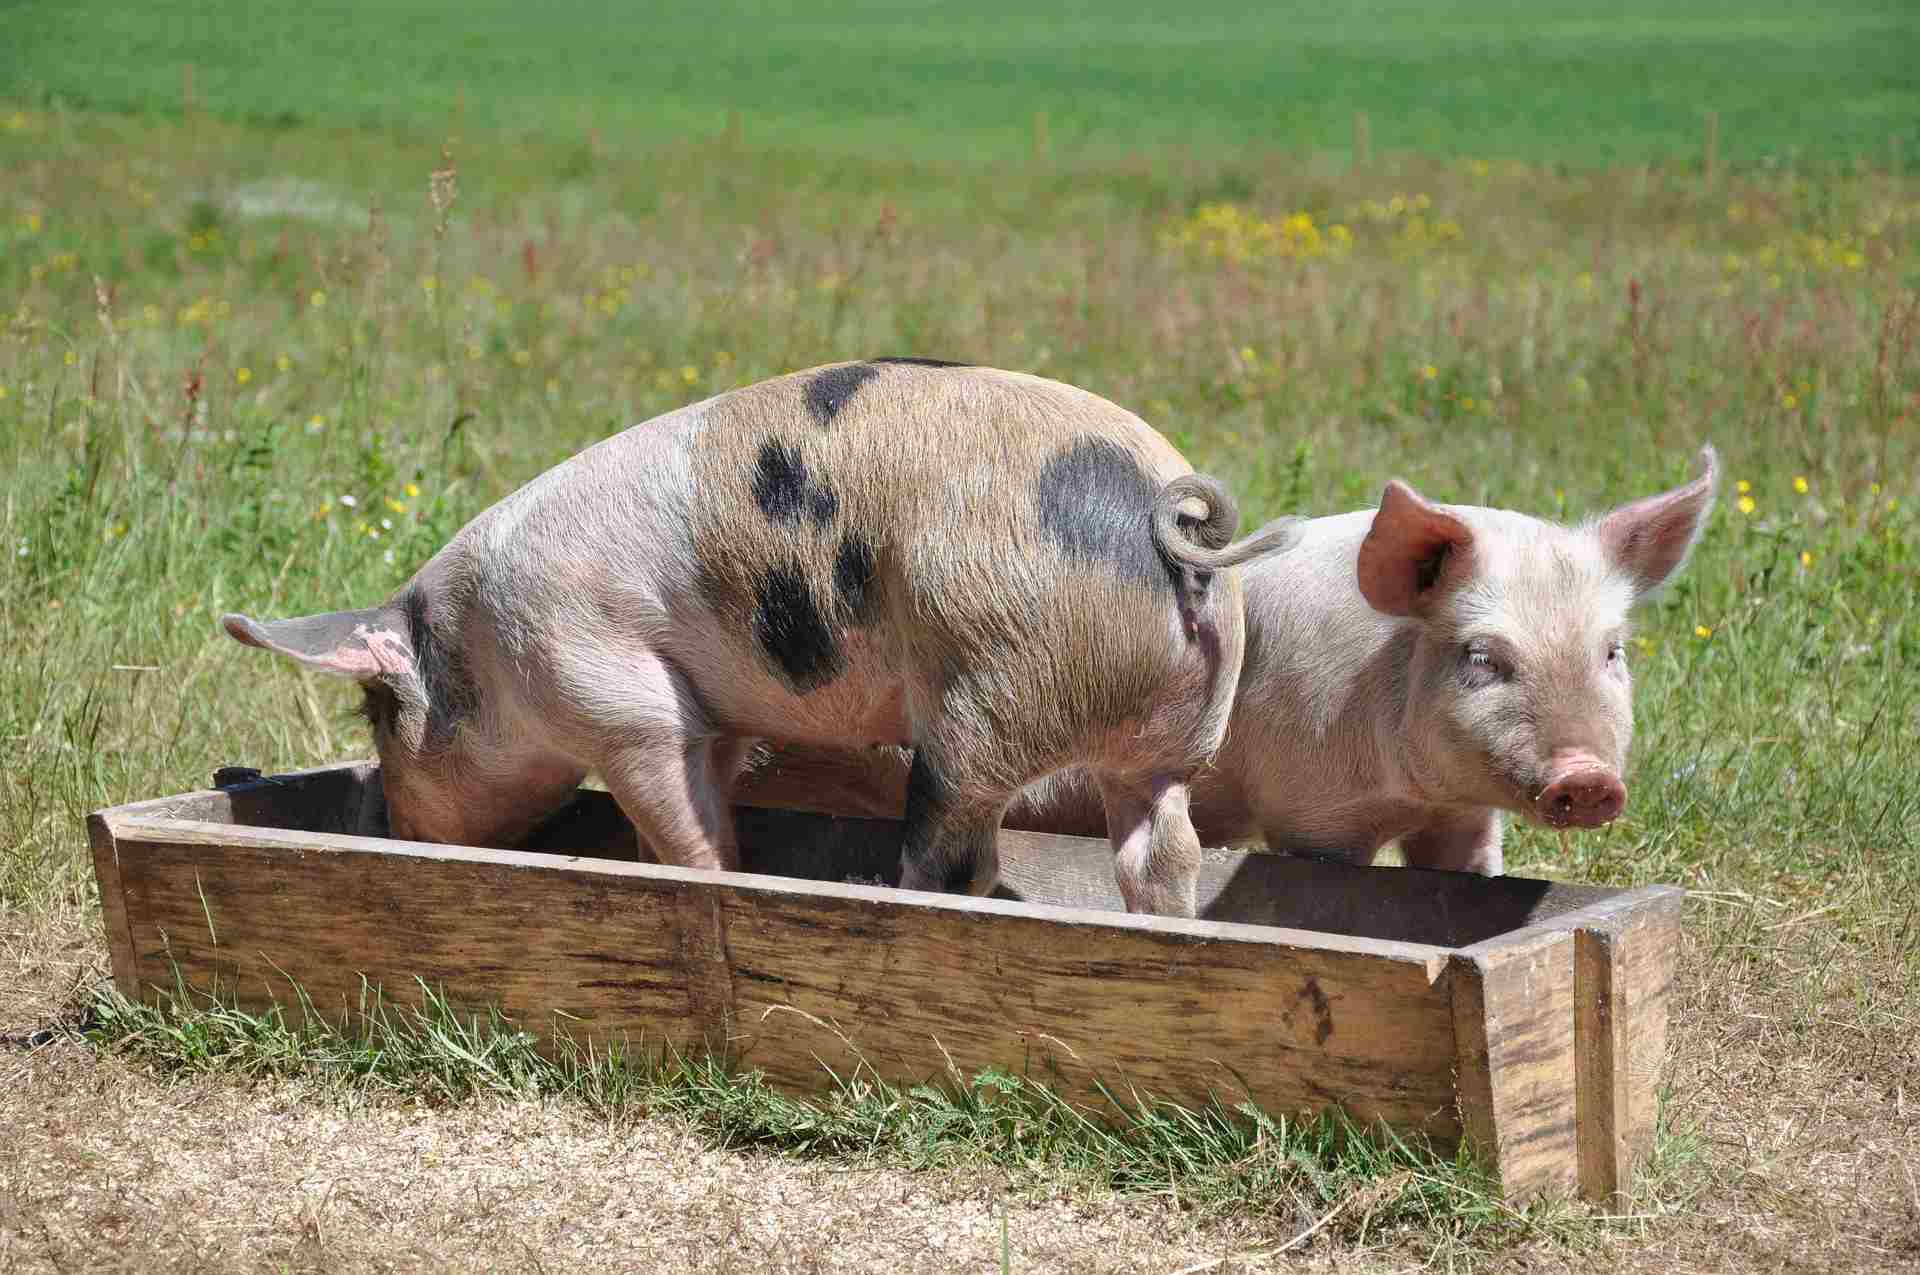 Piglets eating from a trough.